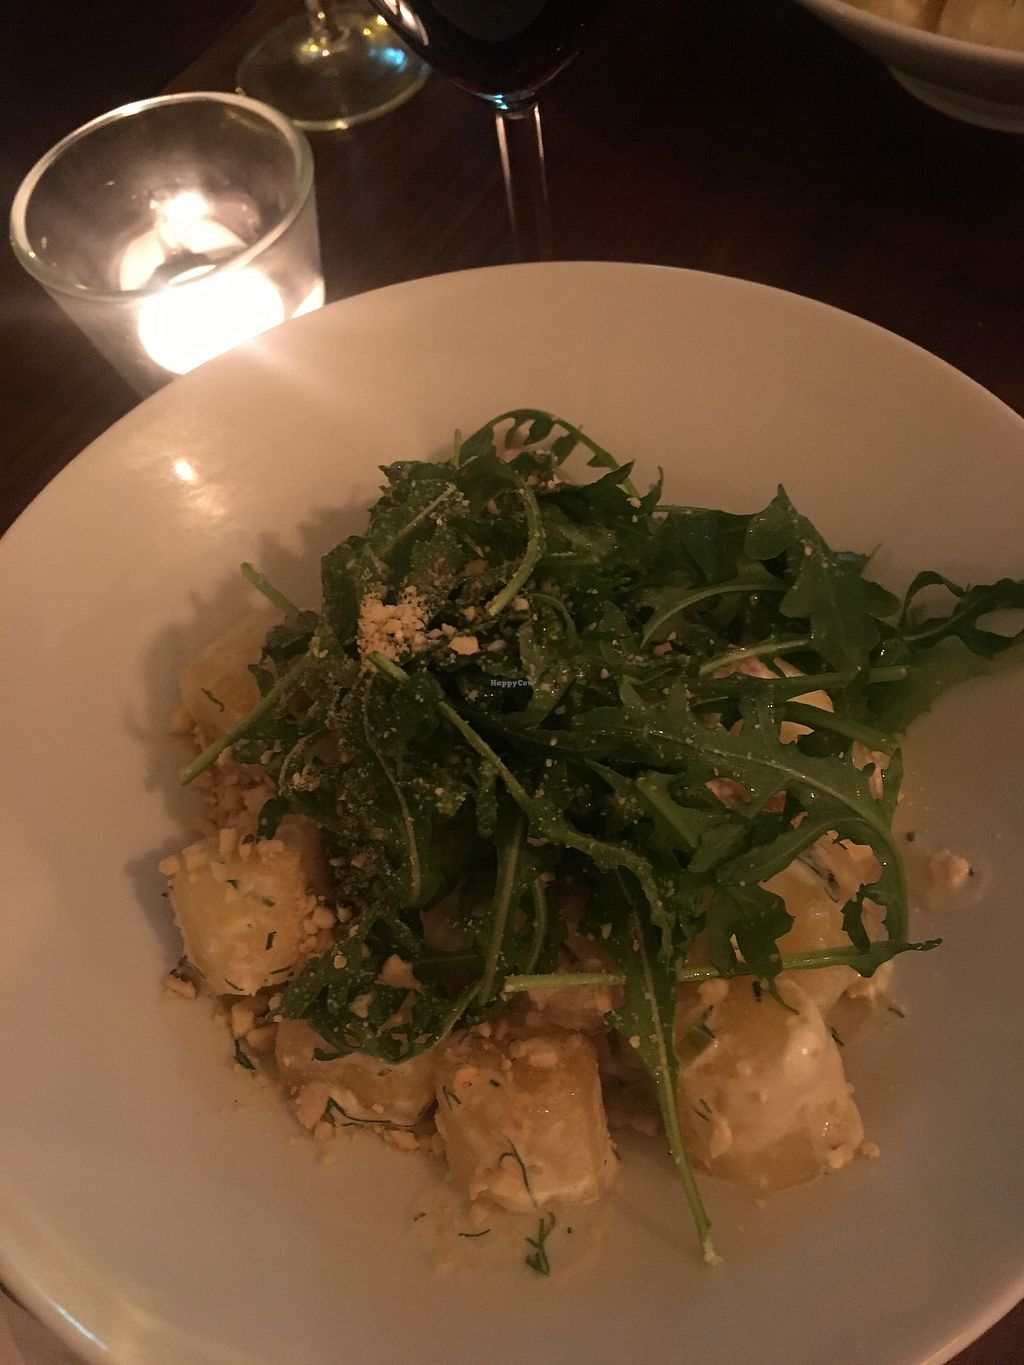 "Photo of Sova Vegan Butcher  by <a href=""/members/profile/tsubbass"">tsubbass</a> <br/>gnocchi .... incredible! So creamy! <br/> November 18, 2017  - <a href='/contact/abuse/image/53343/326805'>Report</a>"